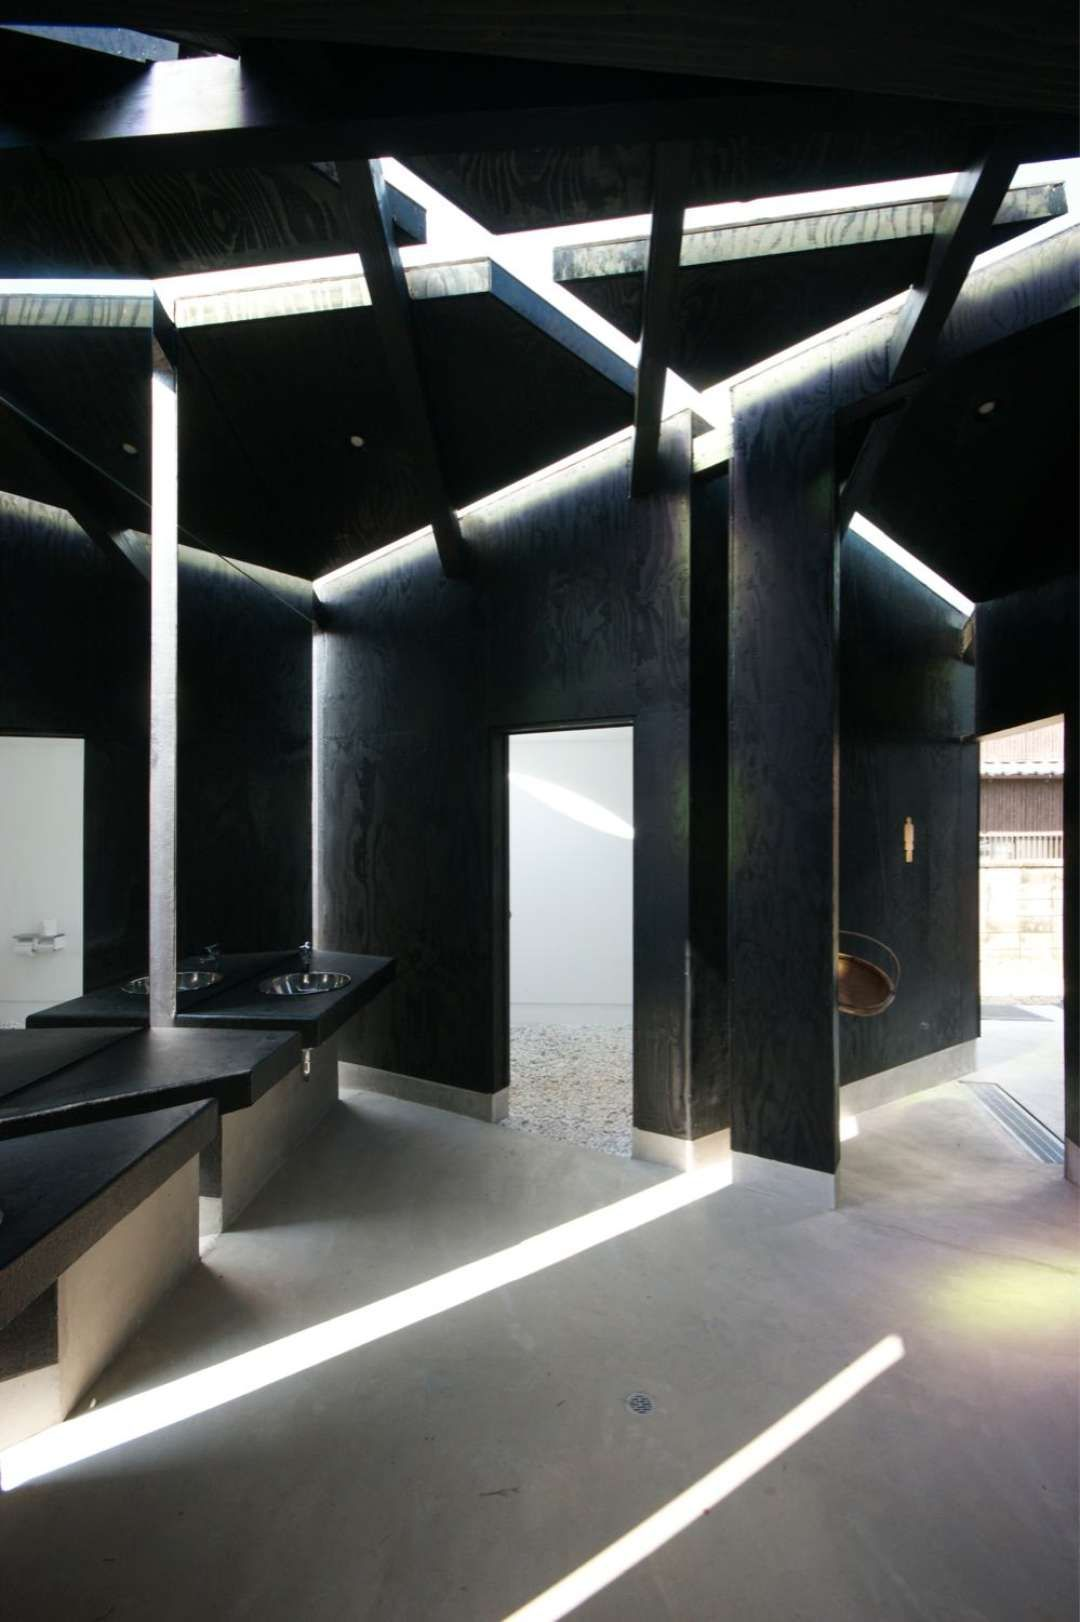 Flush with beauty a designer public restroom in japan architizer public restroom journal Public bathroom design architecture